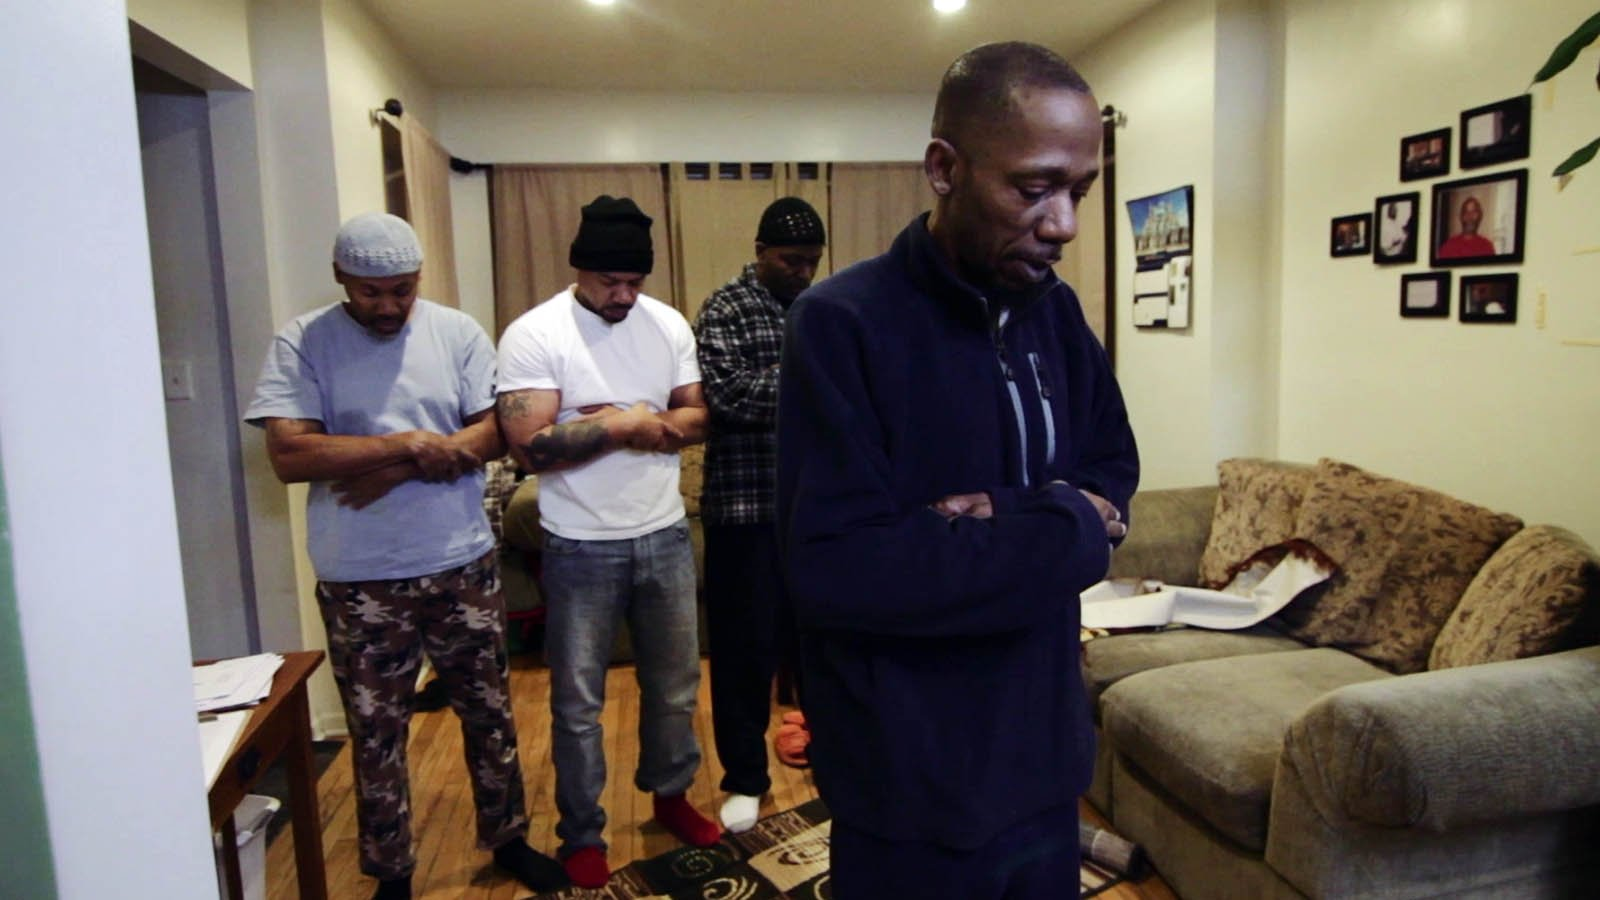 Film follows 'honest struggle' of formerly incarcerated Muslims reentering society